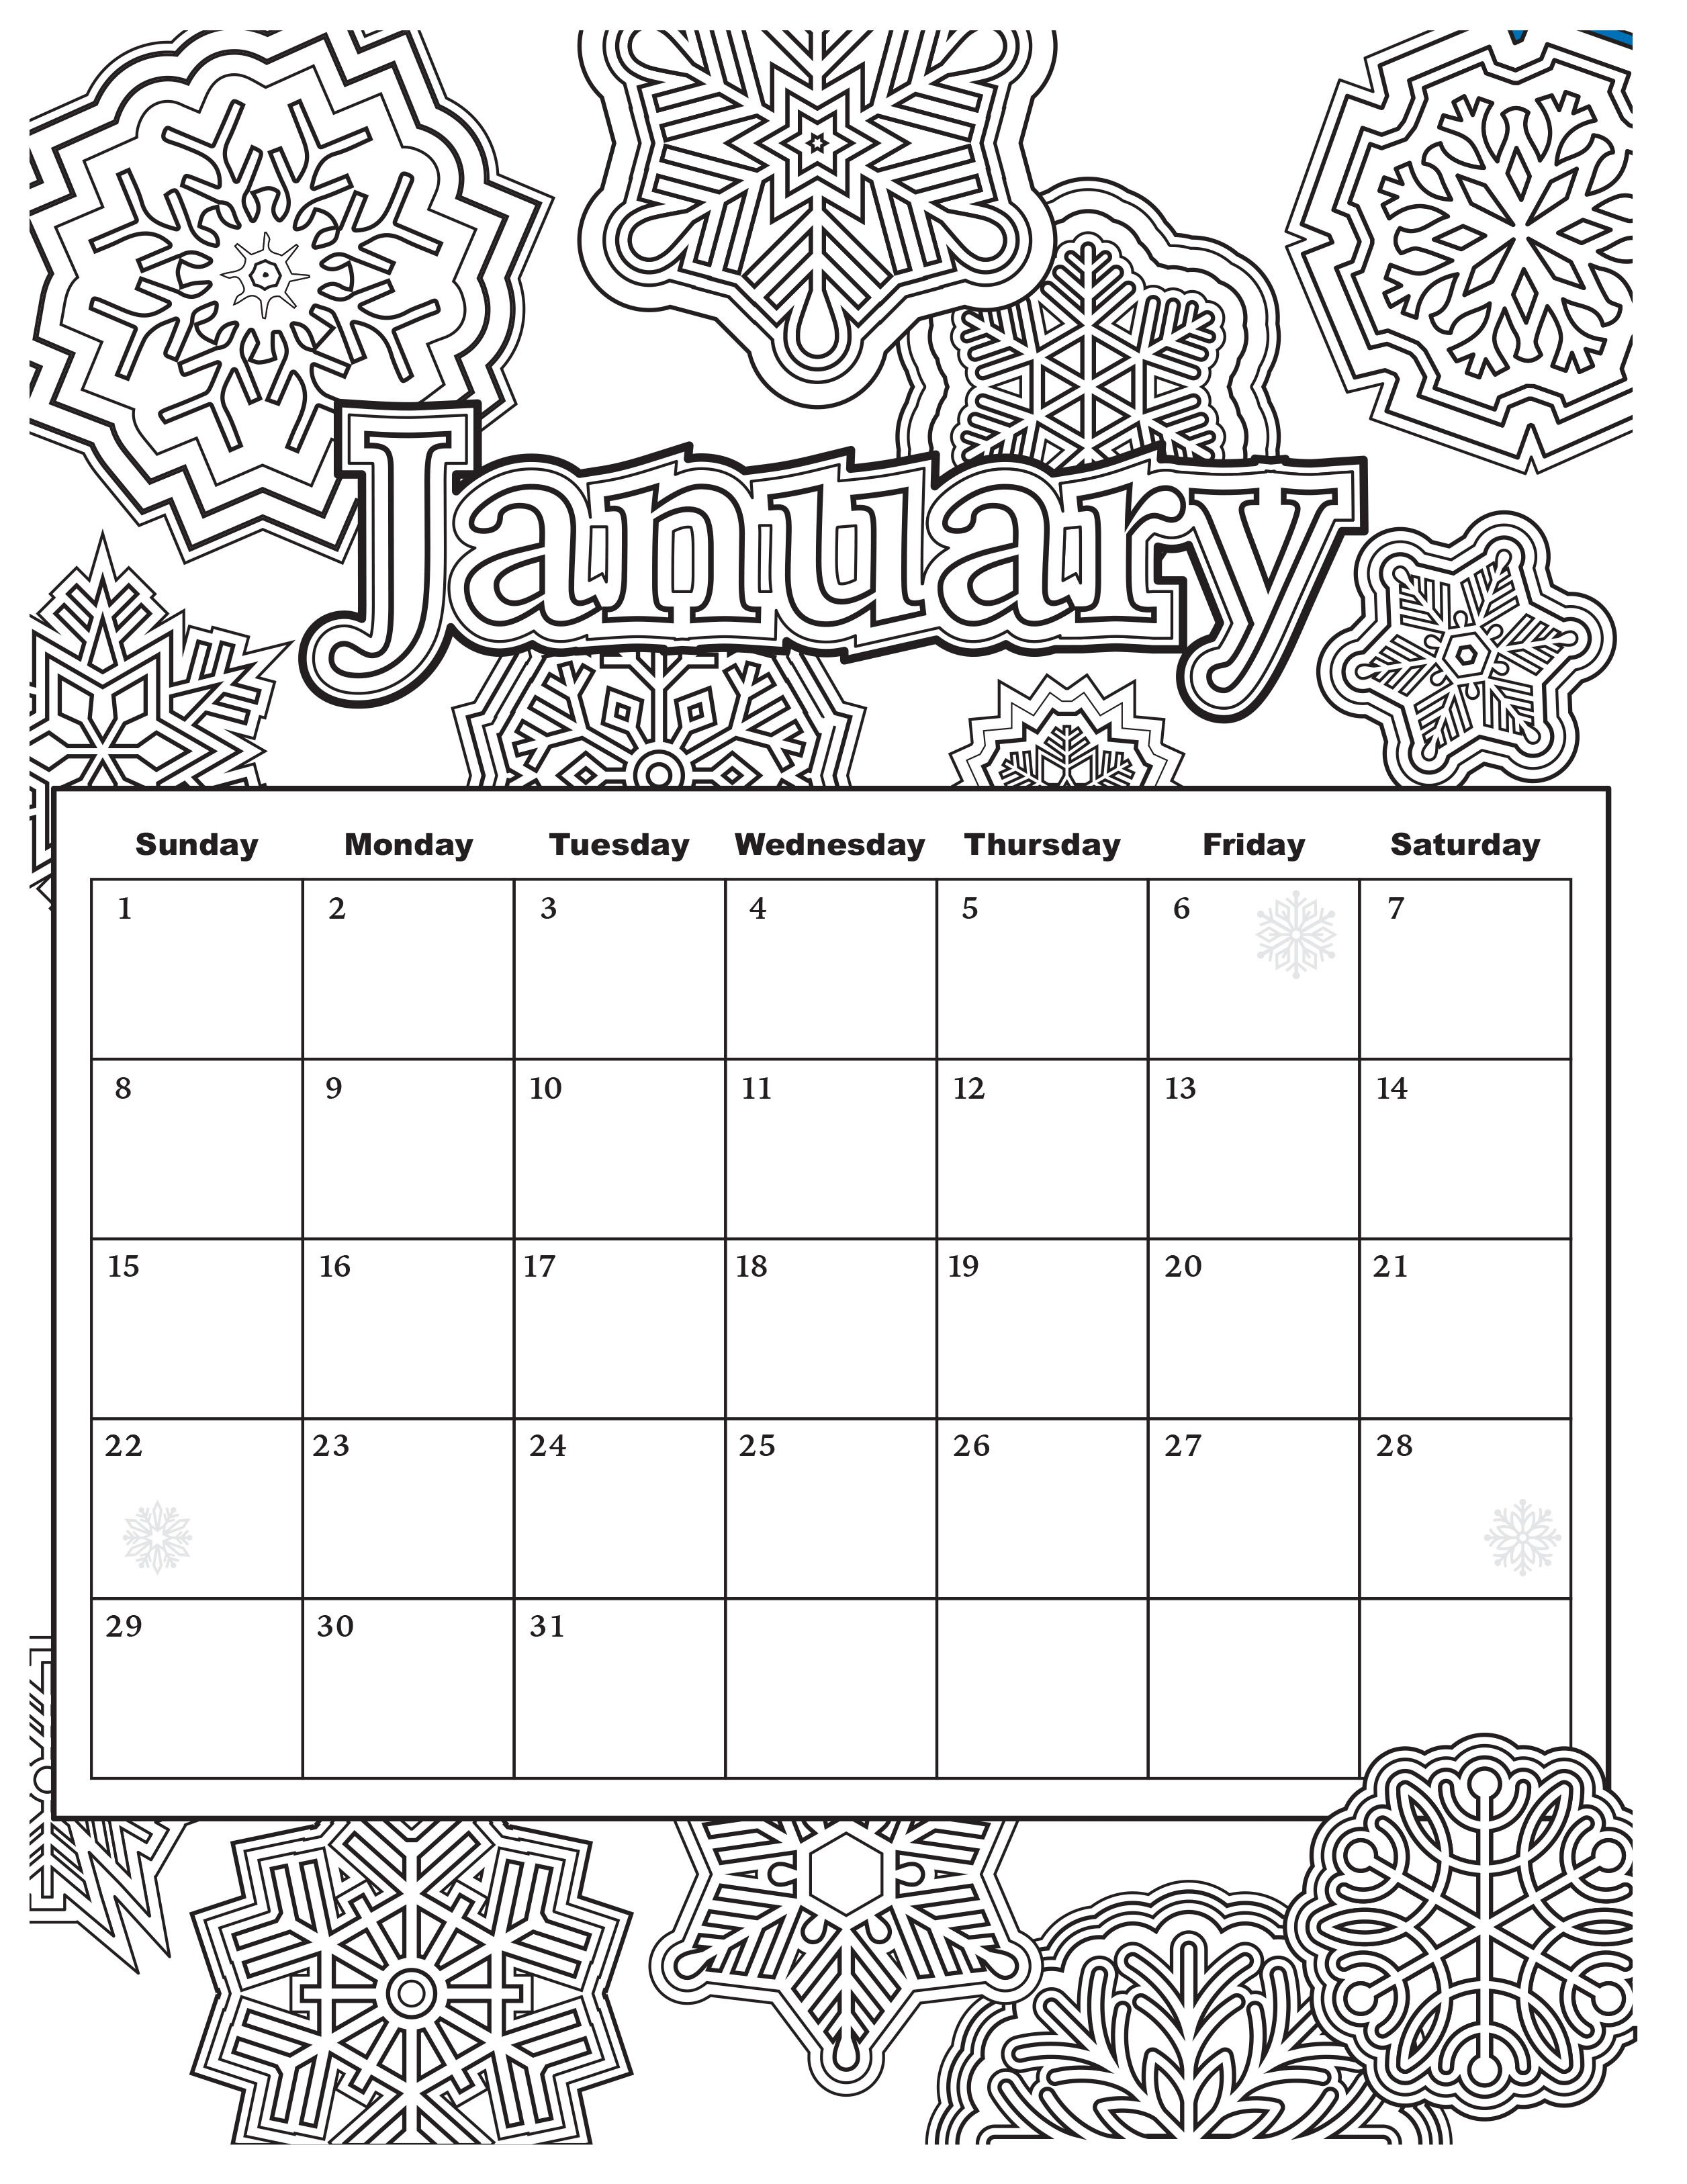 Free Download: Coloring Pages From Popular Adult Coloring Books intended for Coloring Pages October Calendar 2019 Adults